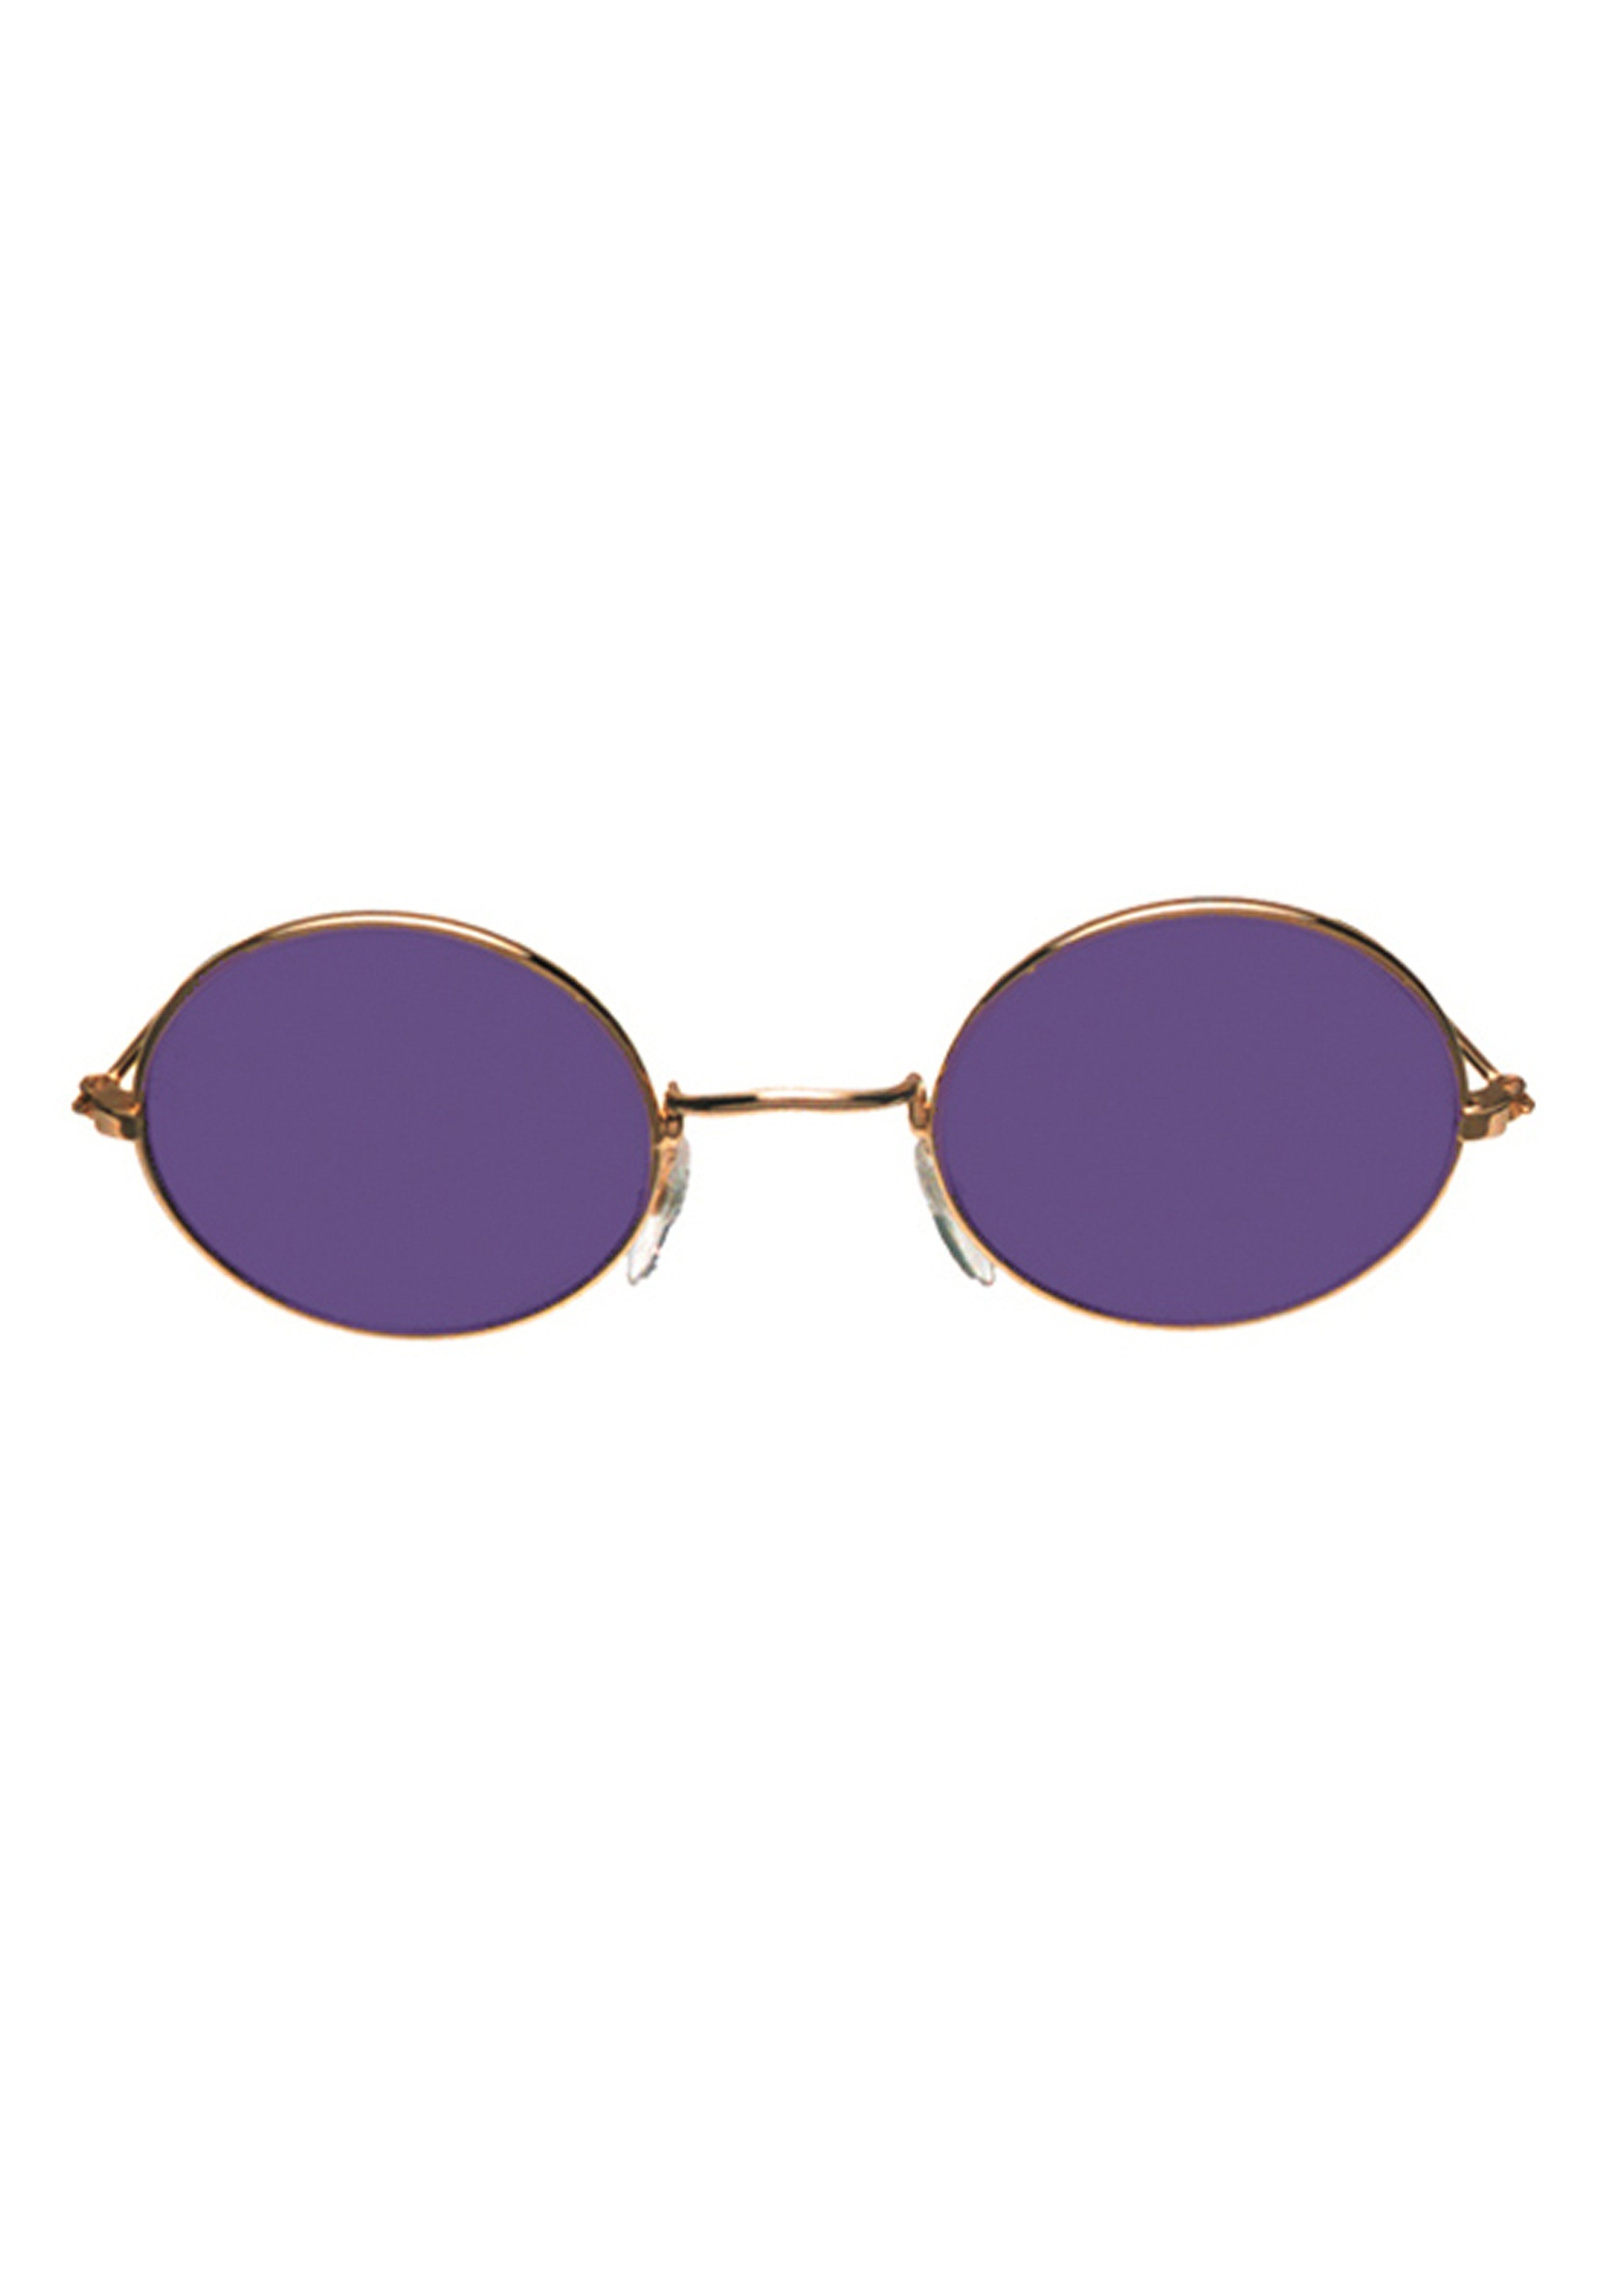 John Glasses Gold and Purple